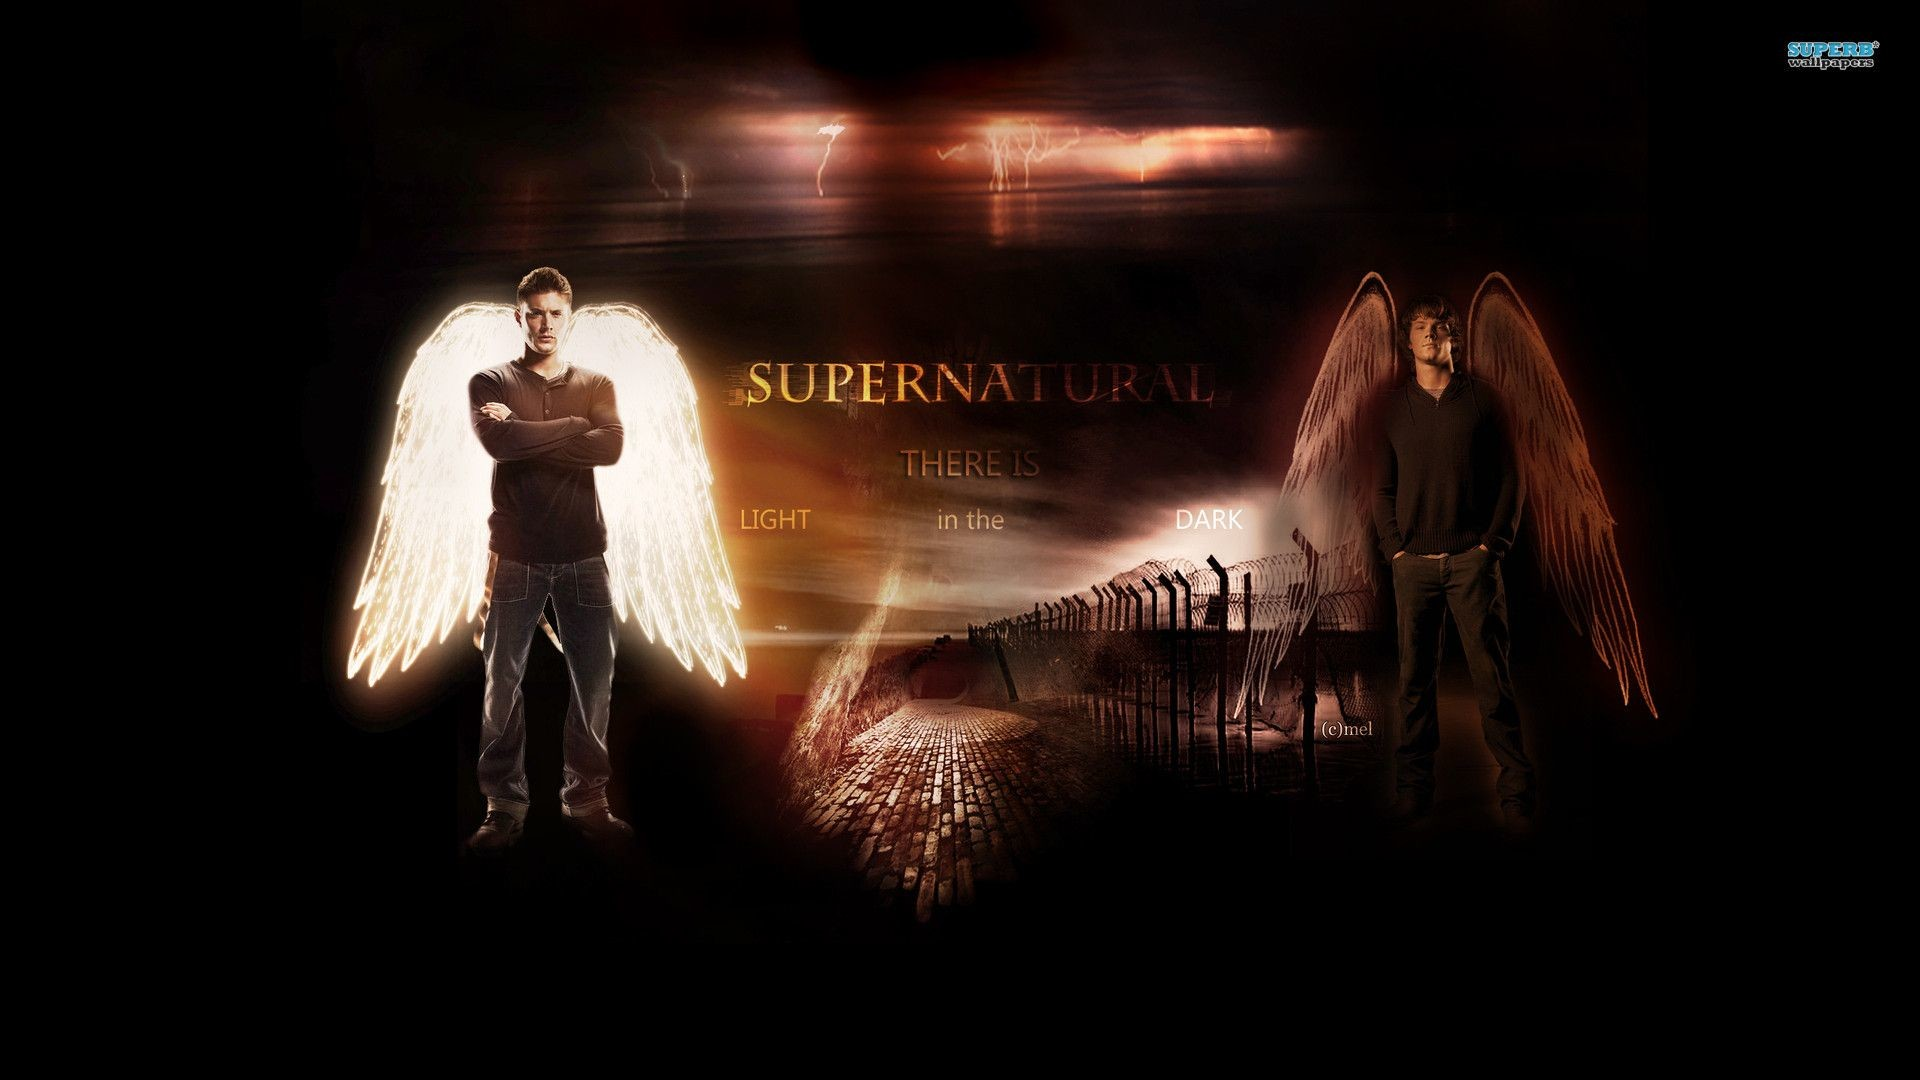 1920x1080 Supernatural Wallpapers 2015 - Wallpaper Cave